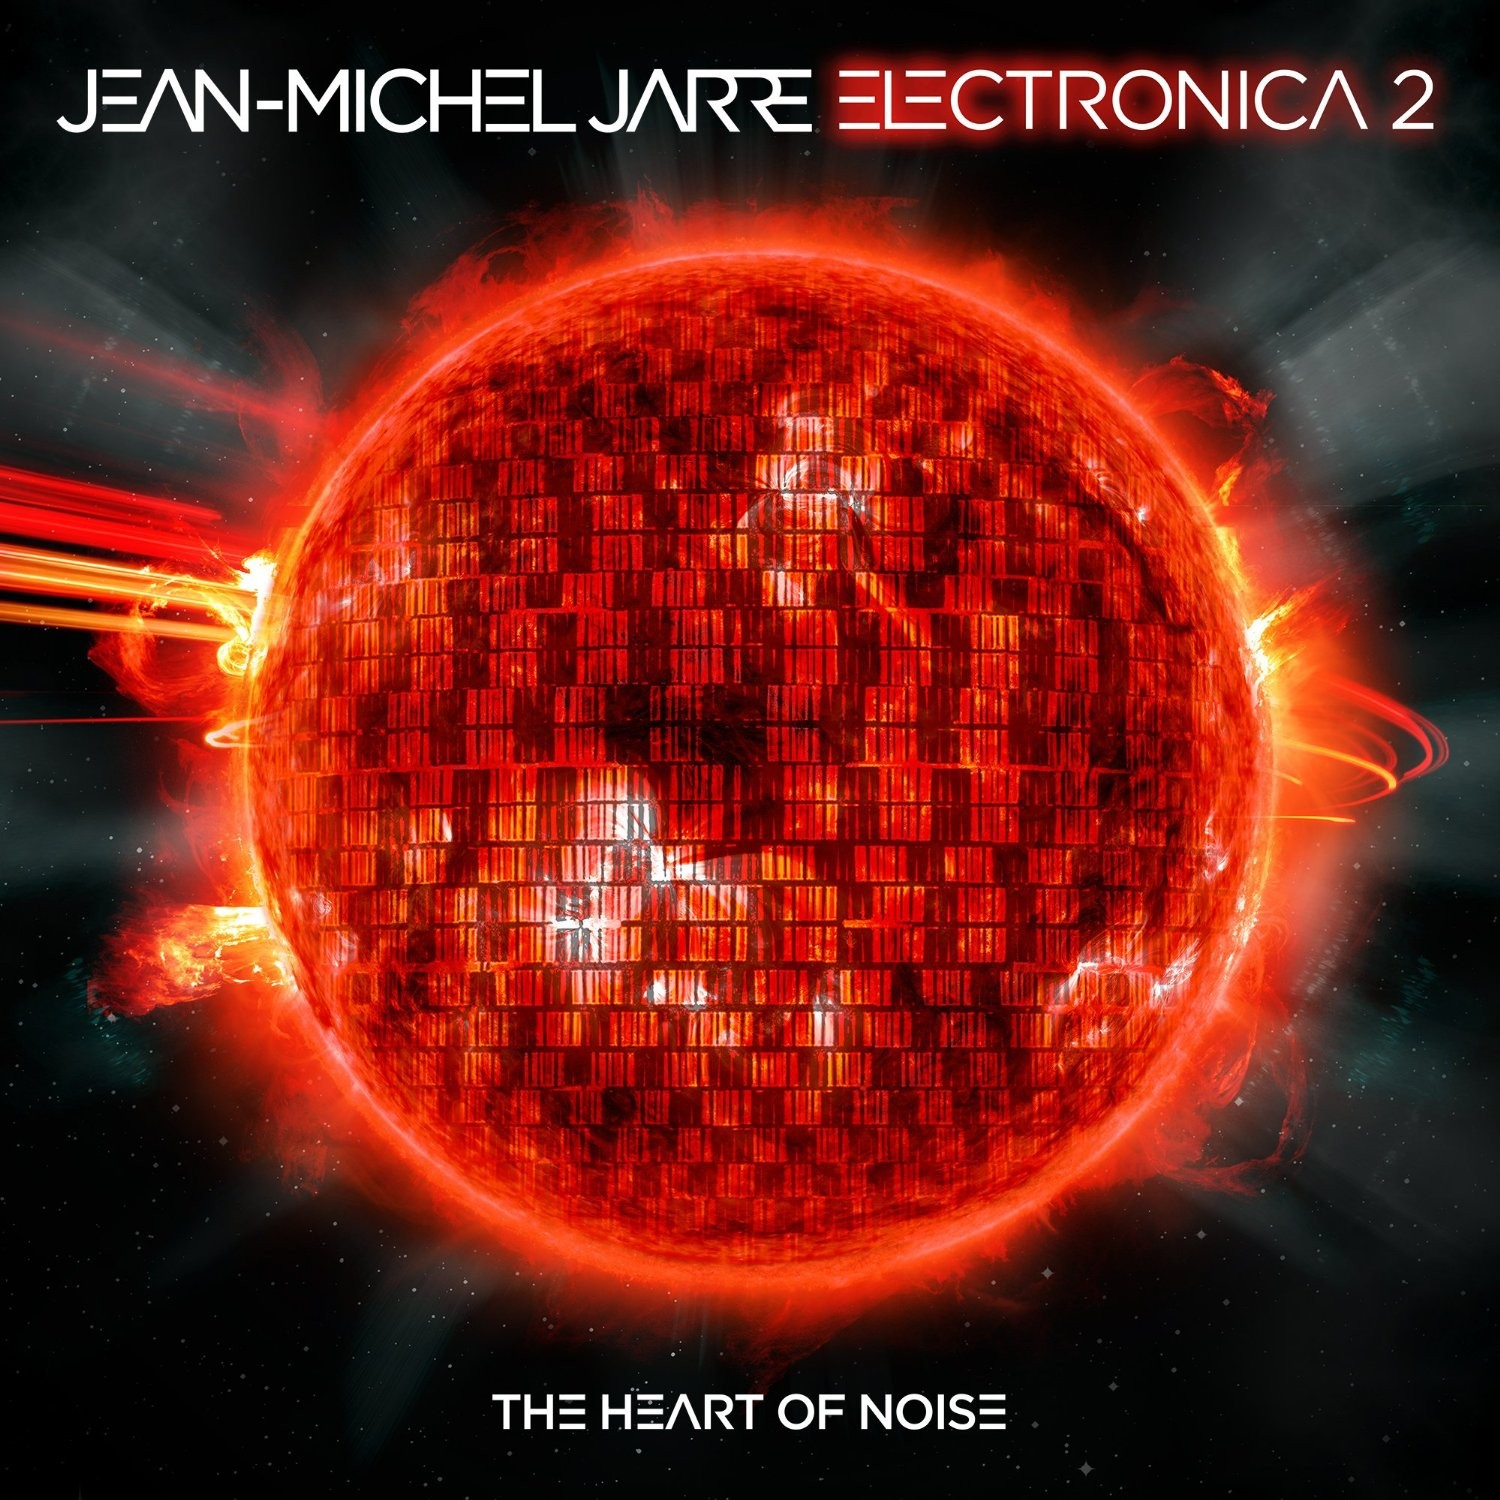 Jean Michel Jarre - Electronica 2: The Heart of Noise - CD